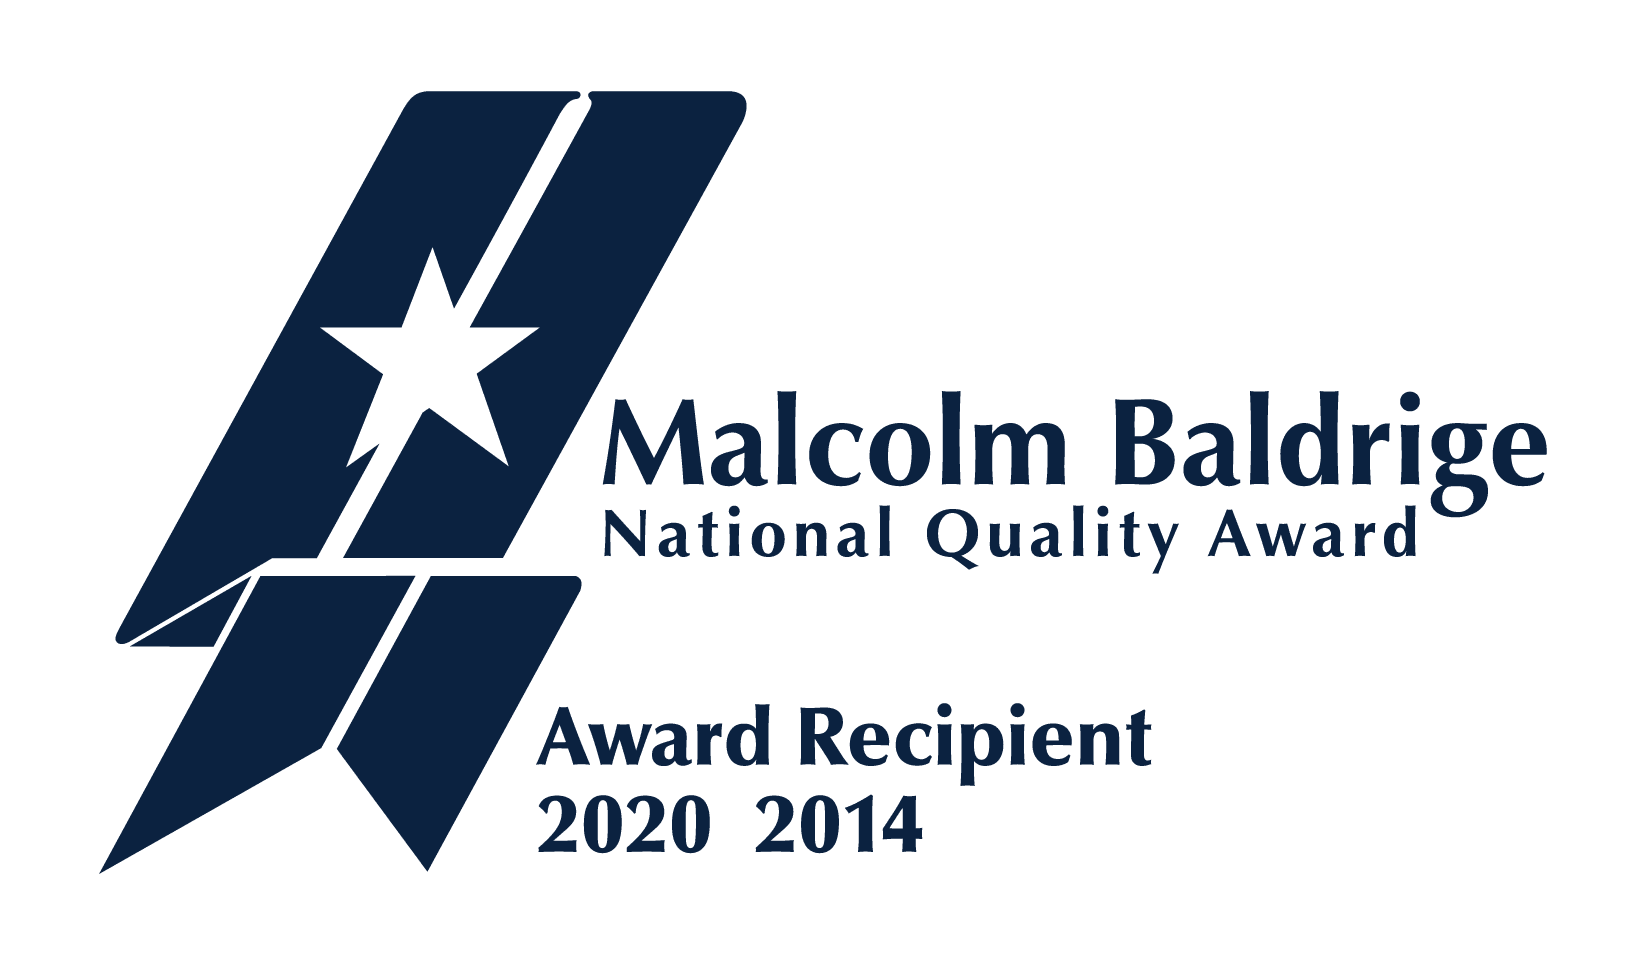 Malcolm Baldrige National Quality Award 2020